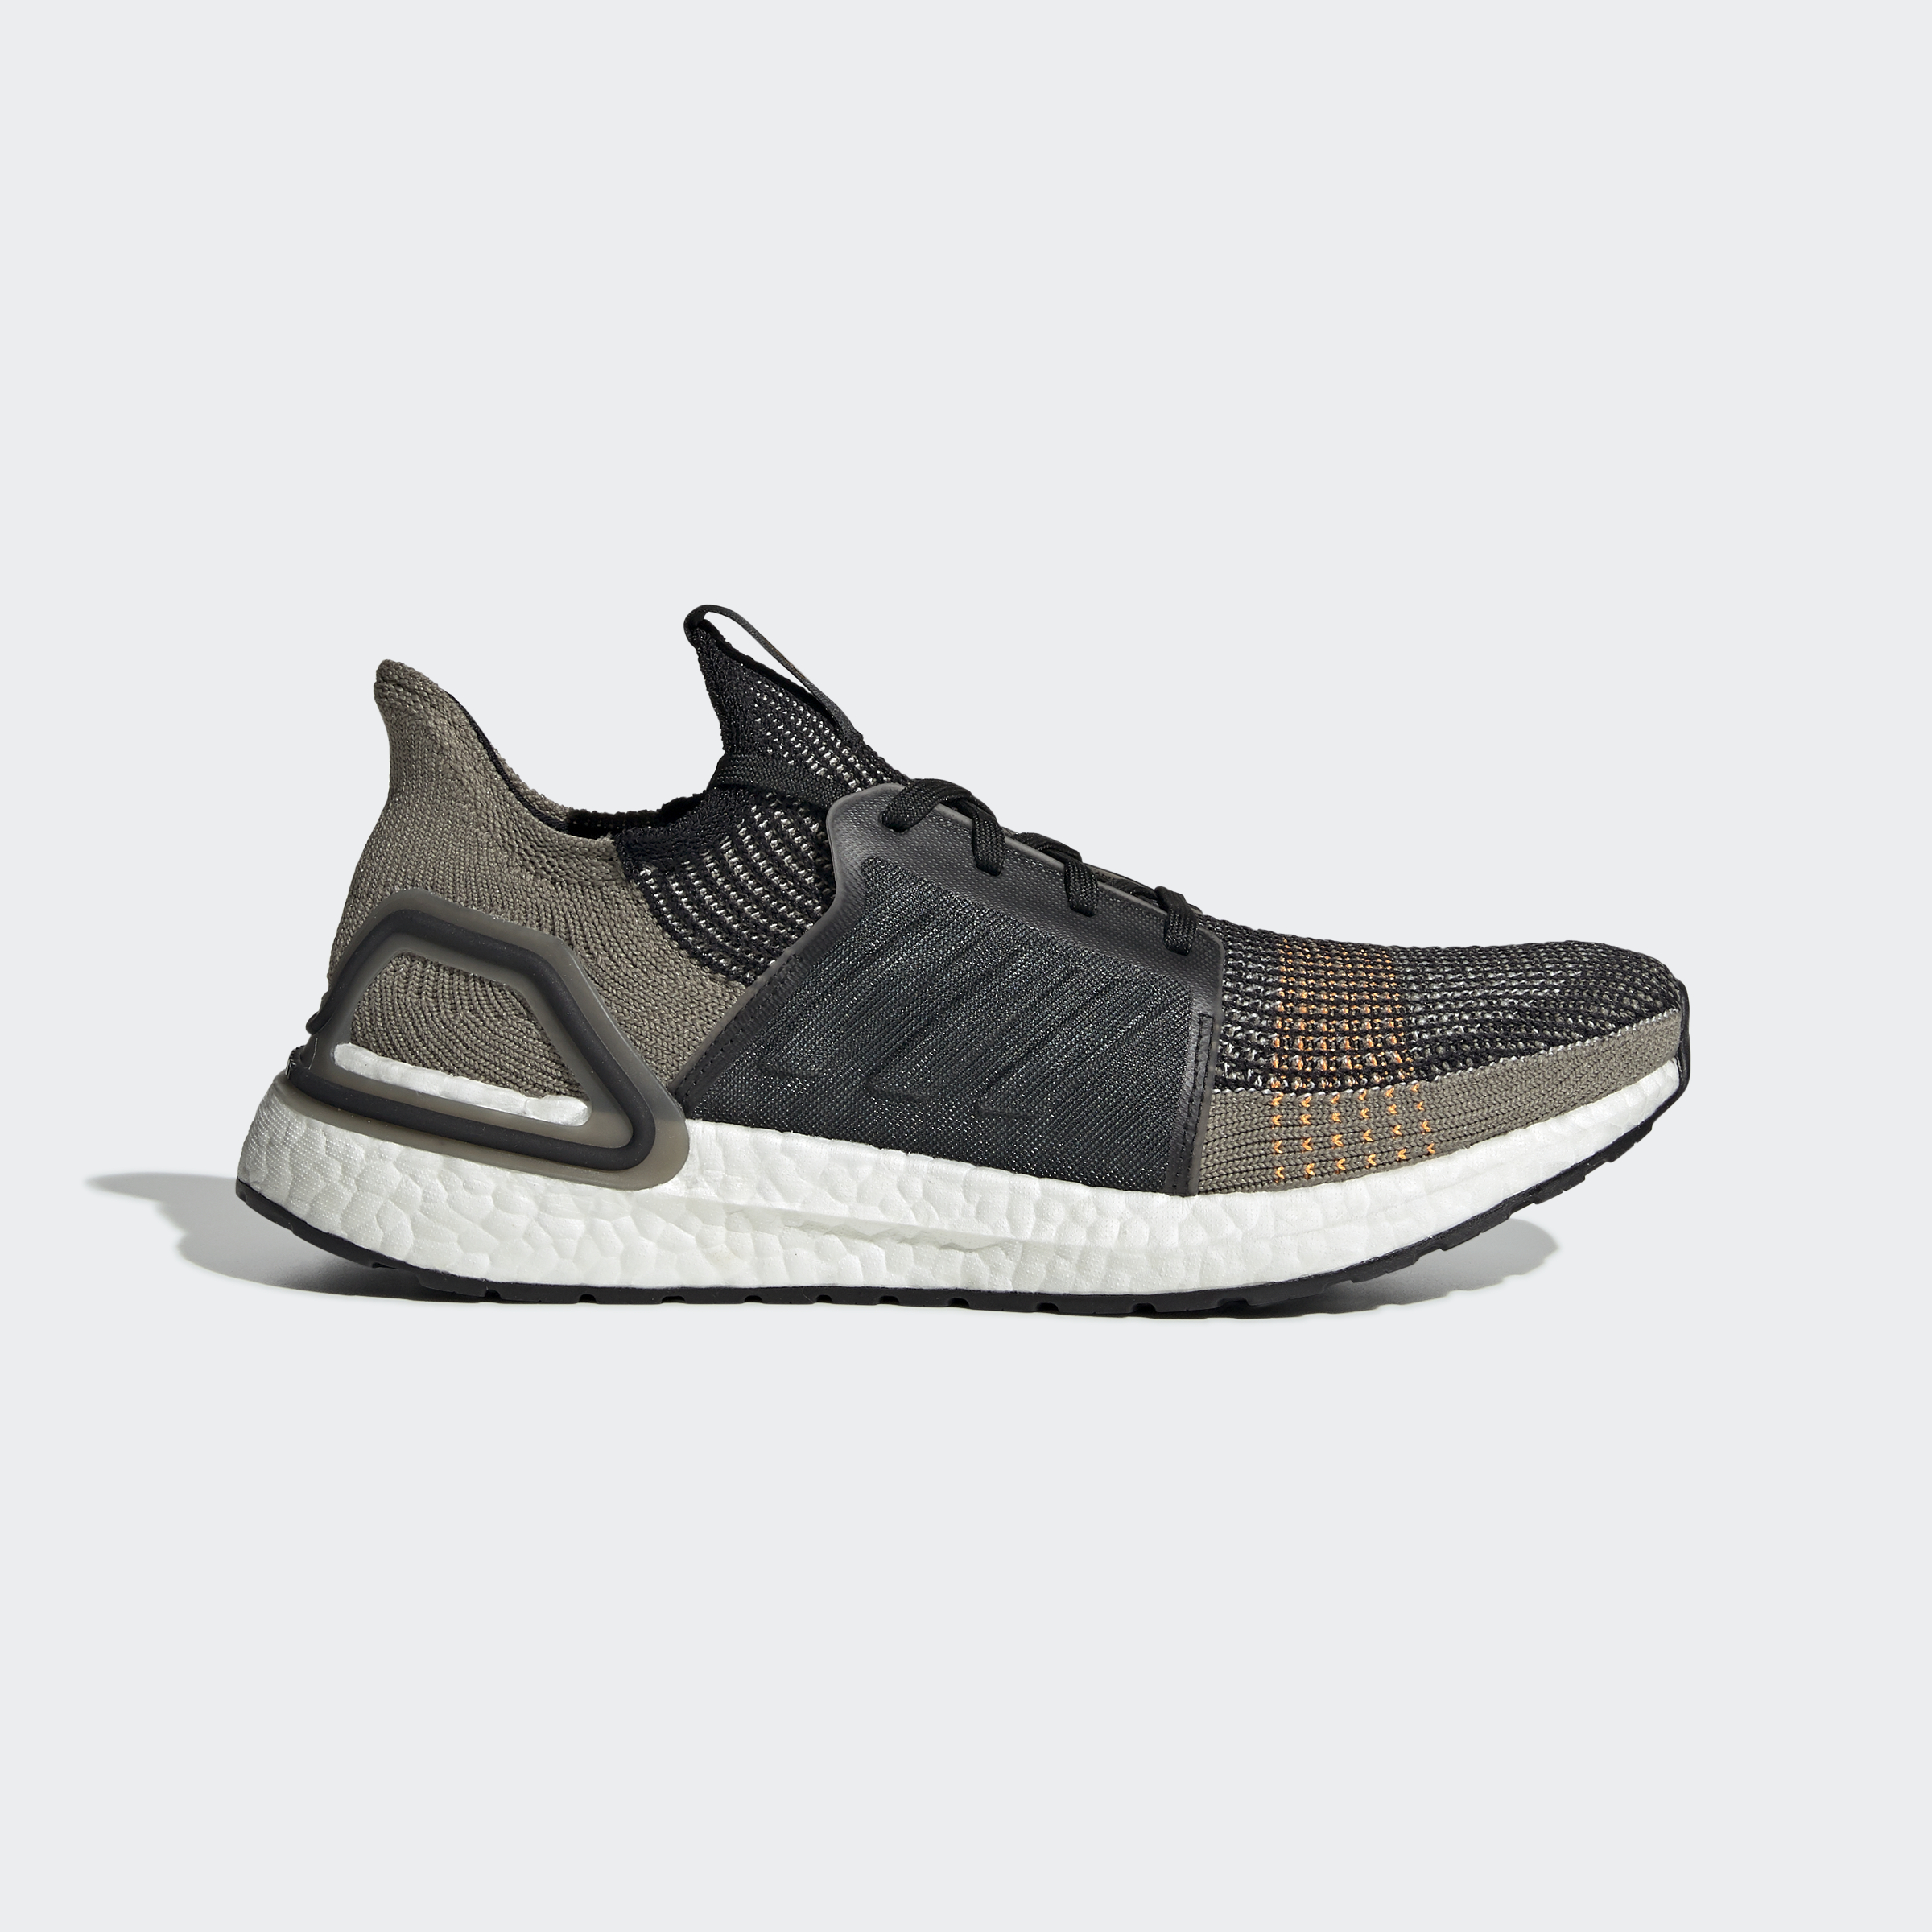 adidas-Ultraboost-19-Shoes-Athletic-amp-Sneakers thumbnail 89